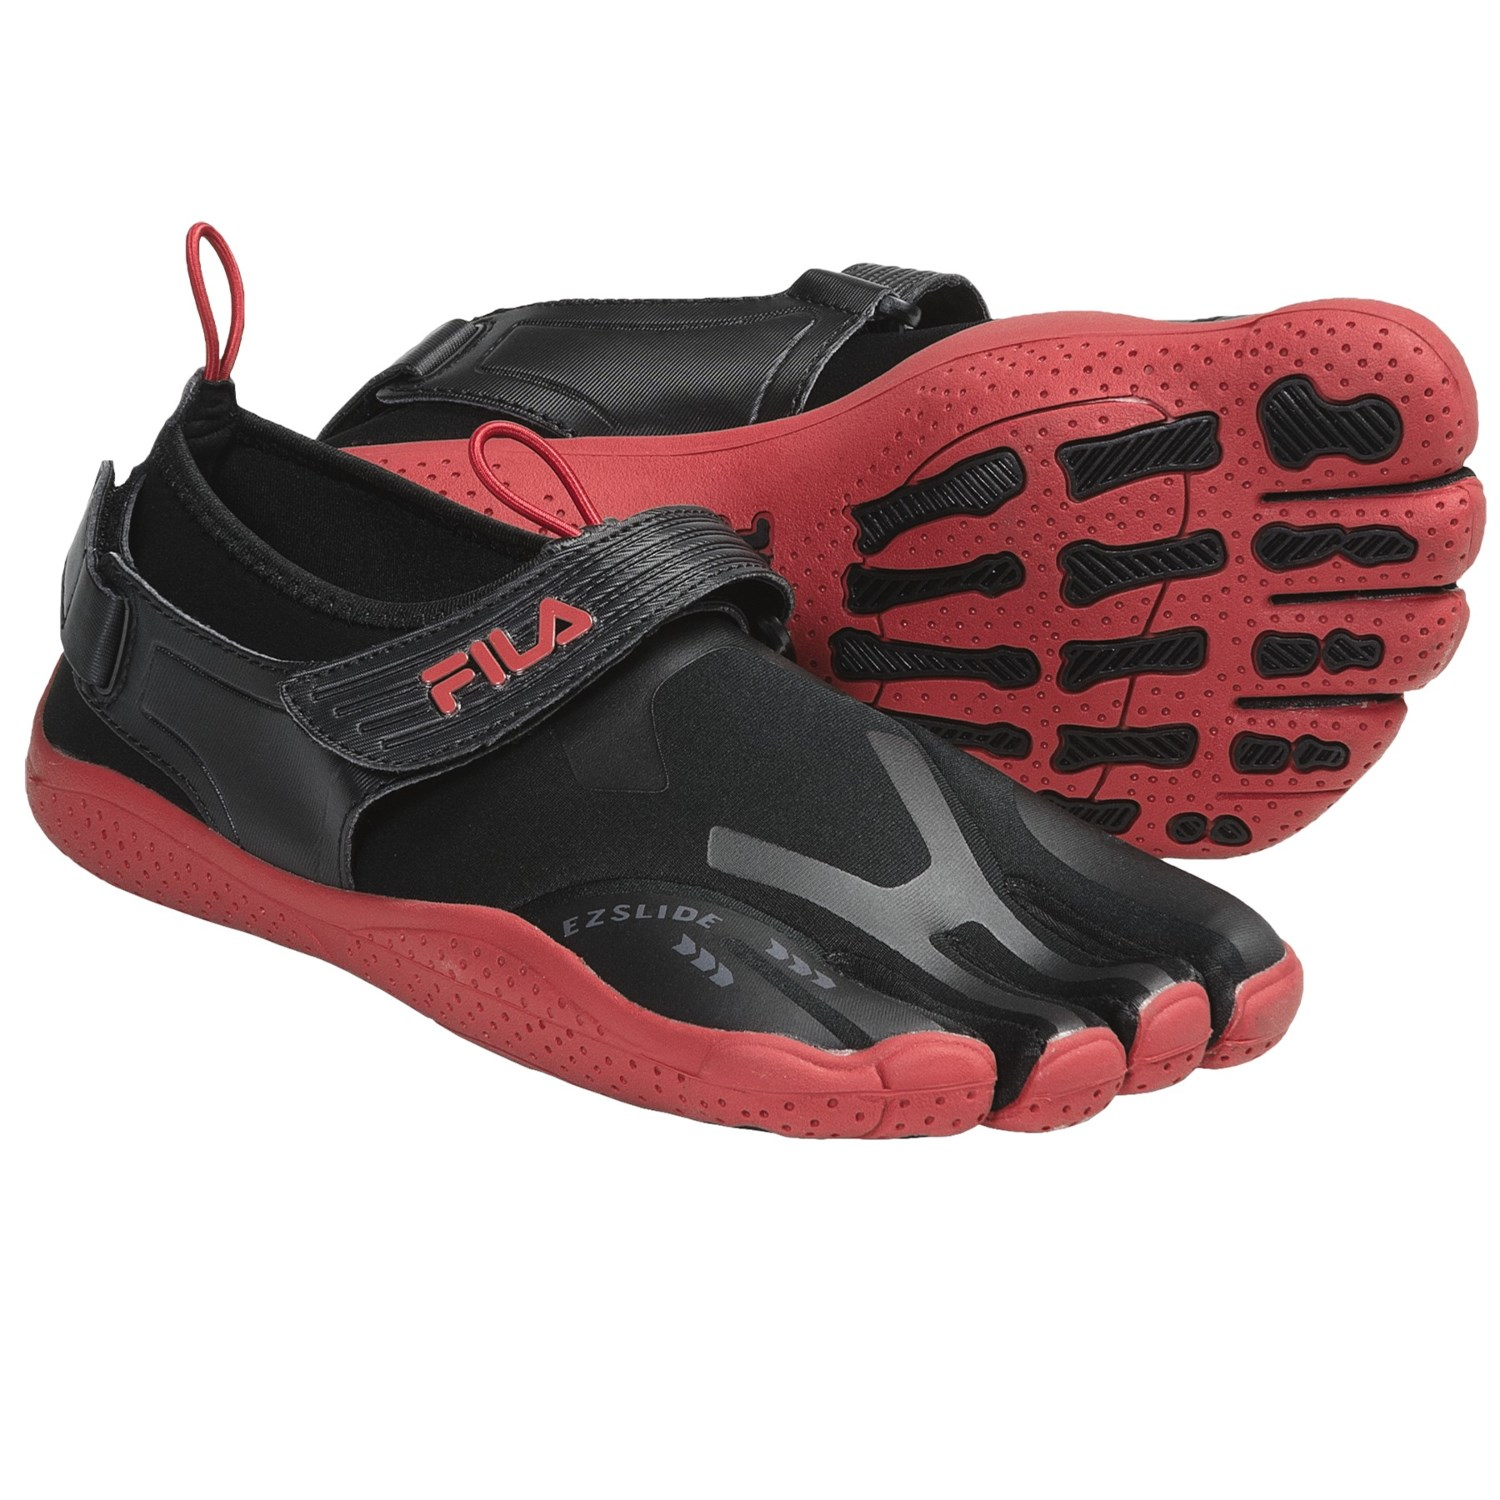 Fila Water Shoes Size